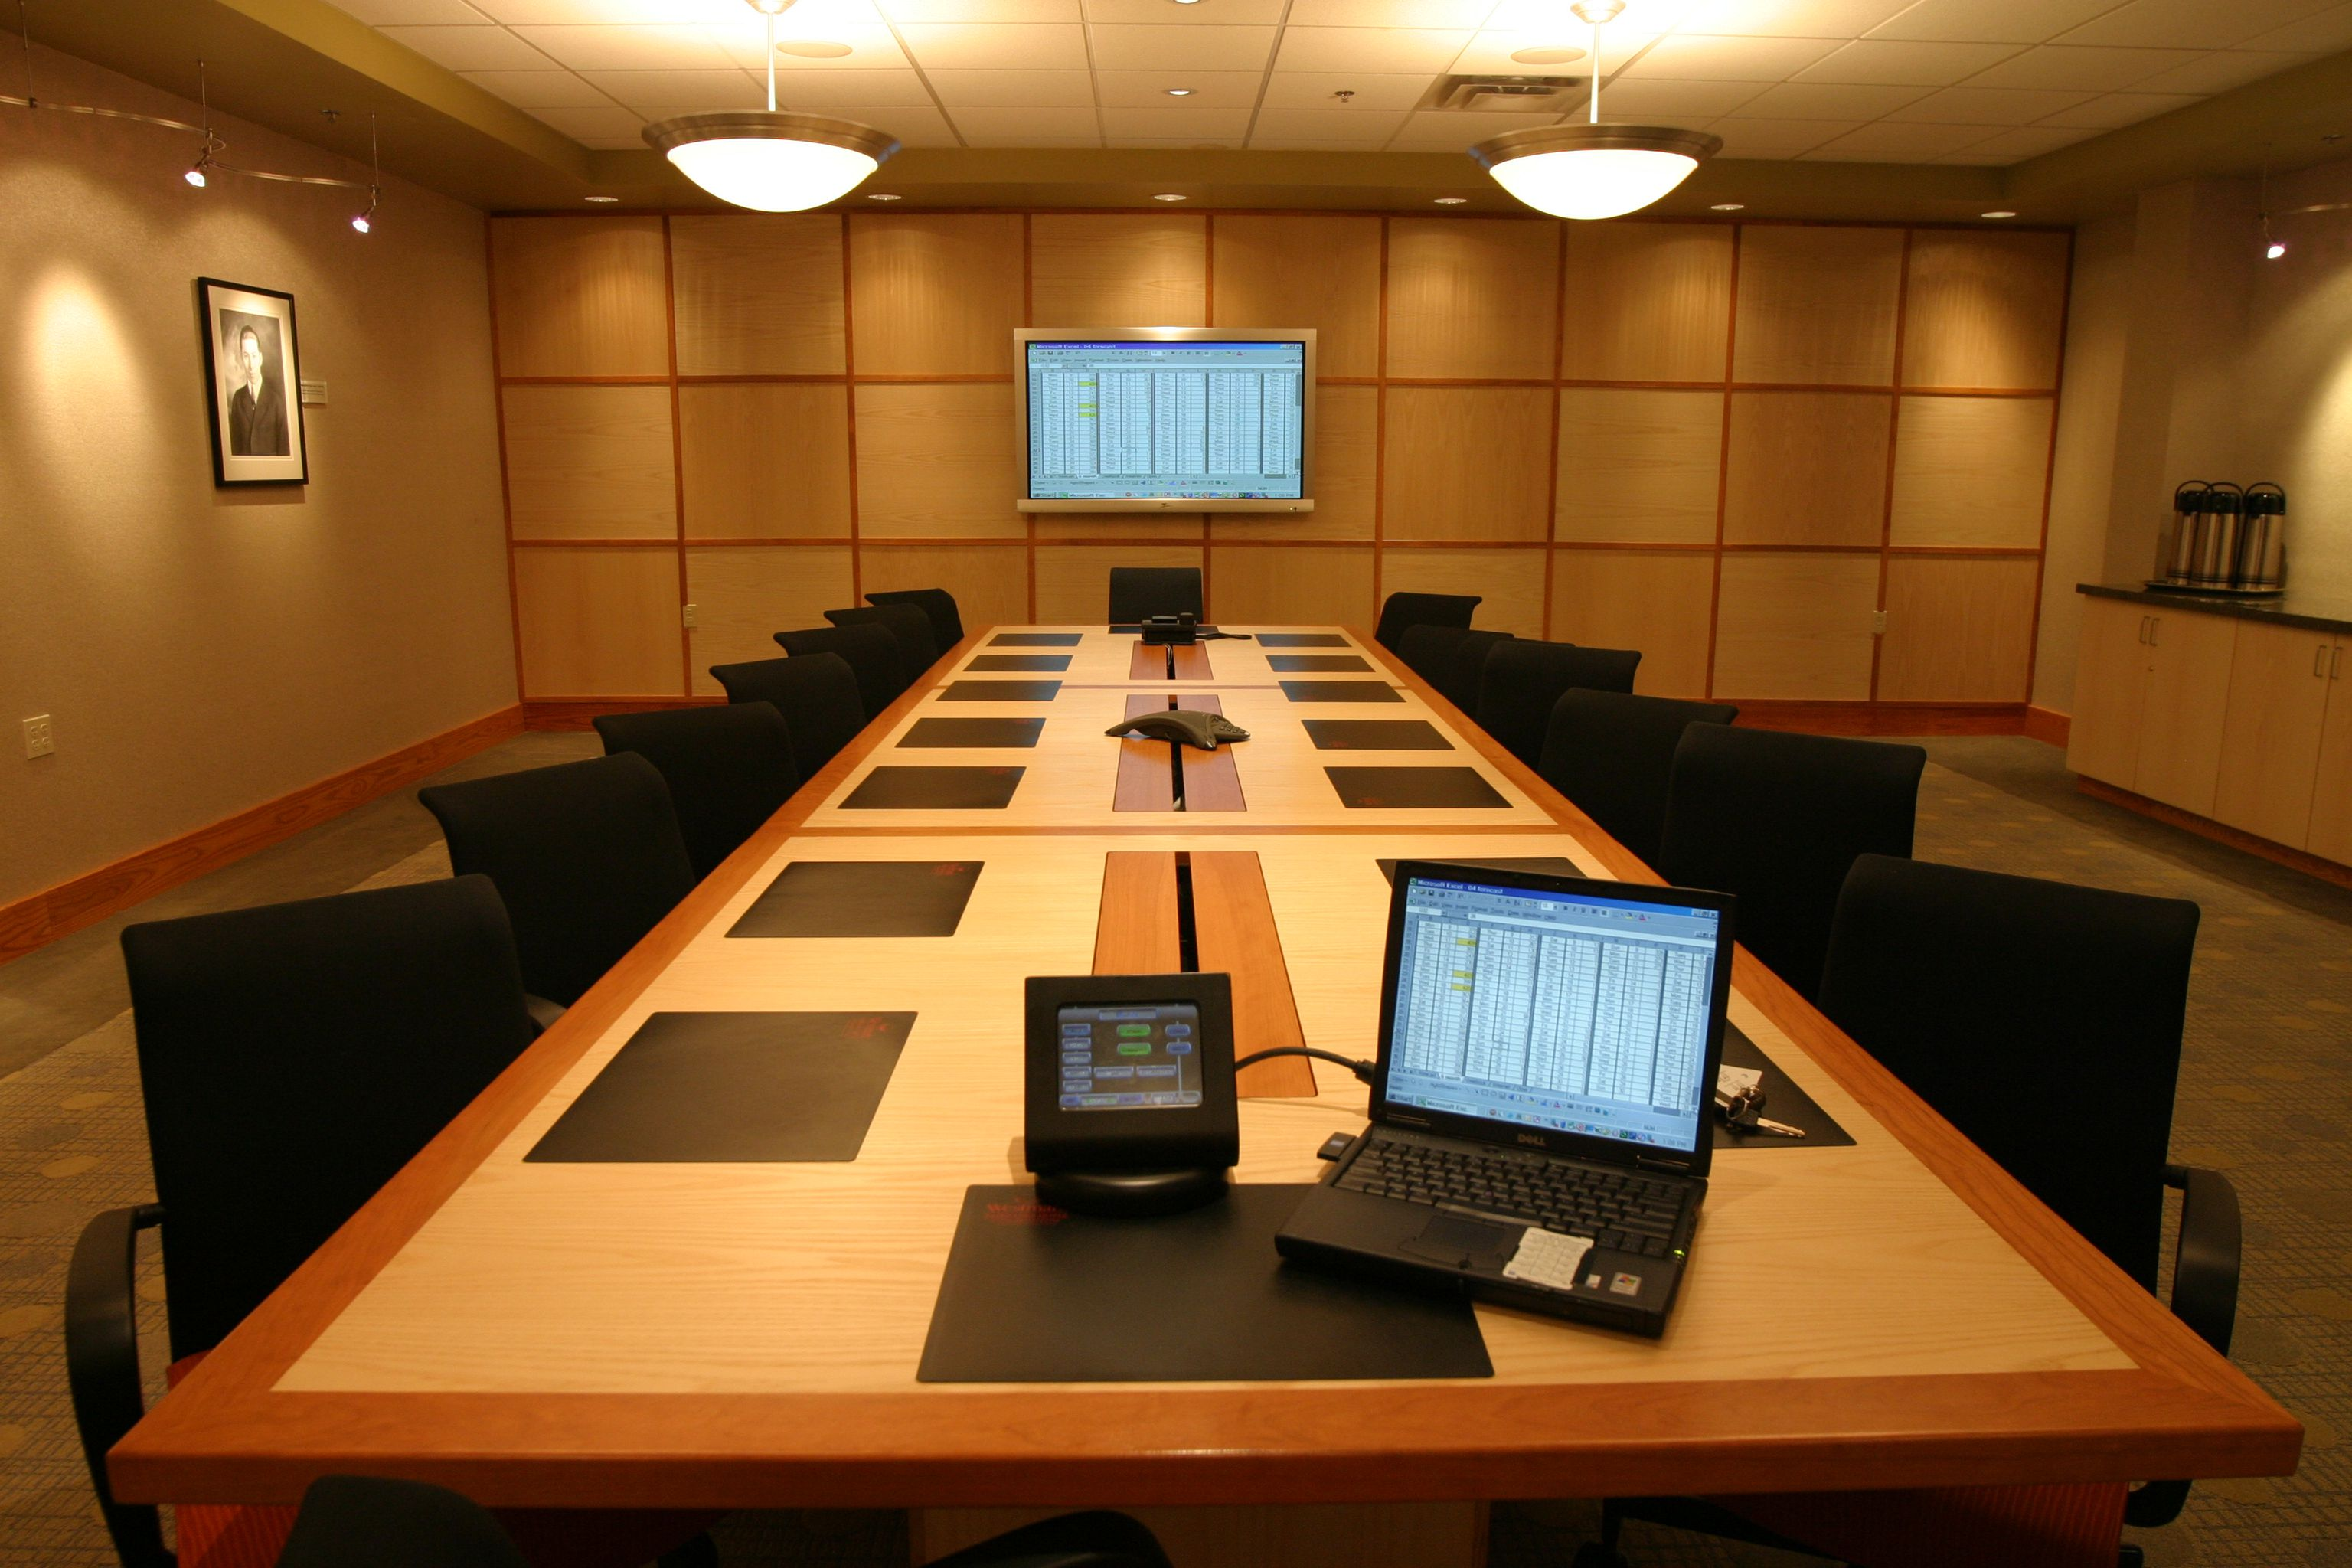 Westmark Fairbanks Hotel & Conference Center Boardroom with long boardroom table, chairs and computer with screen against back wall